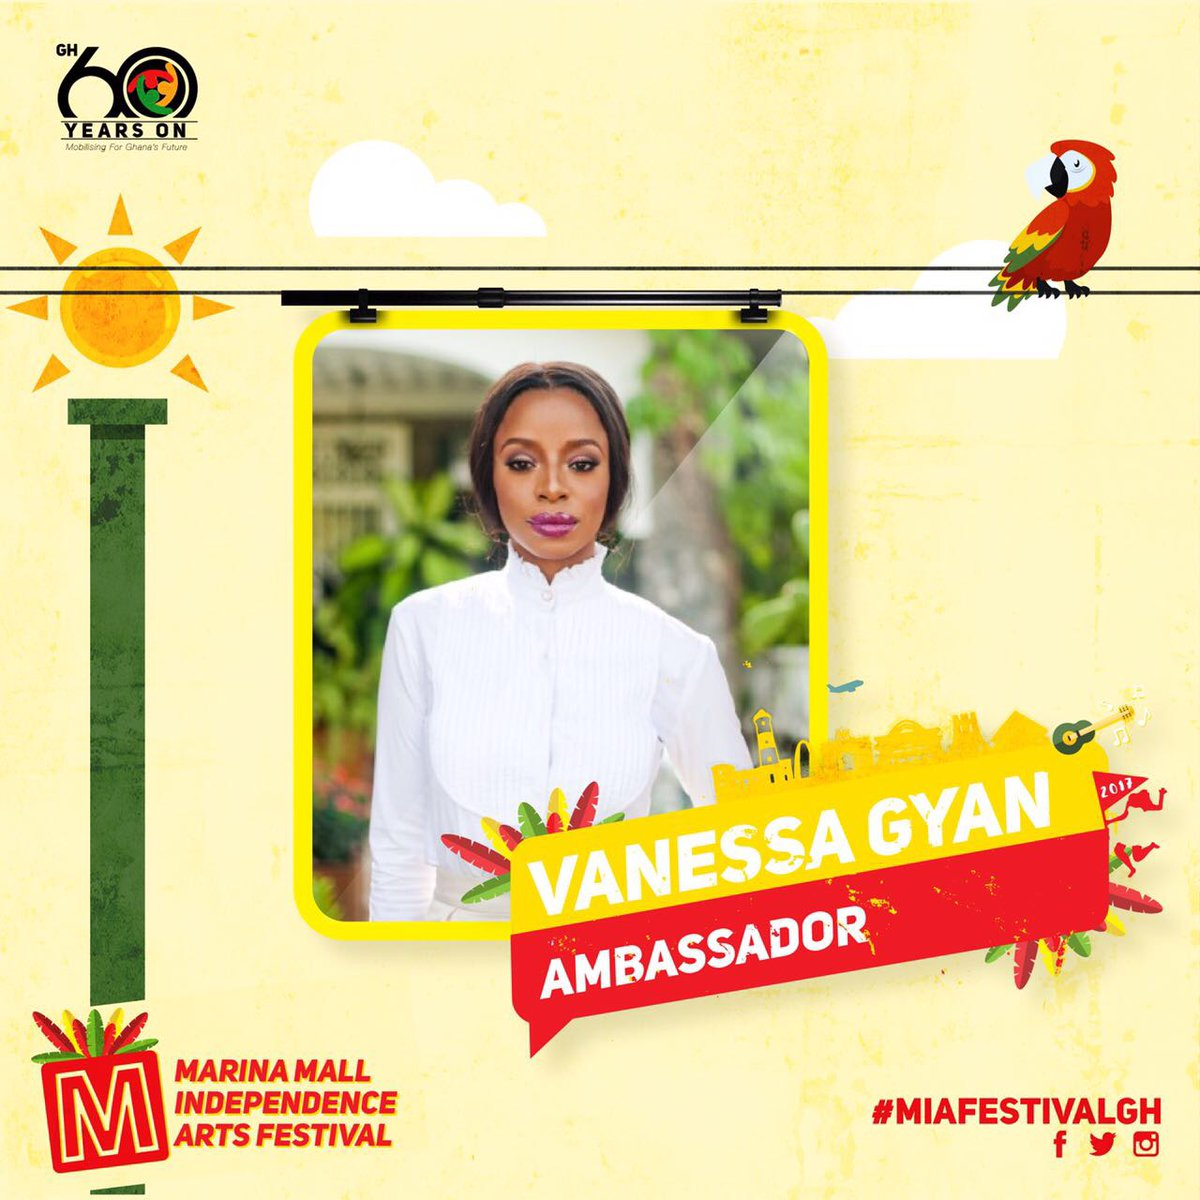 Vanessa Gyan named ambassador for Marina Mall arts festival - EOnlineGH.Com